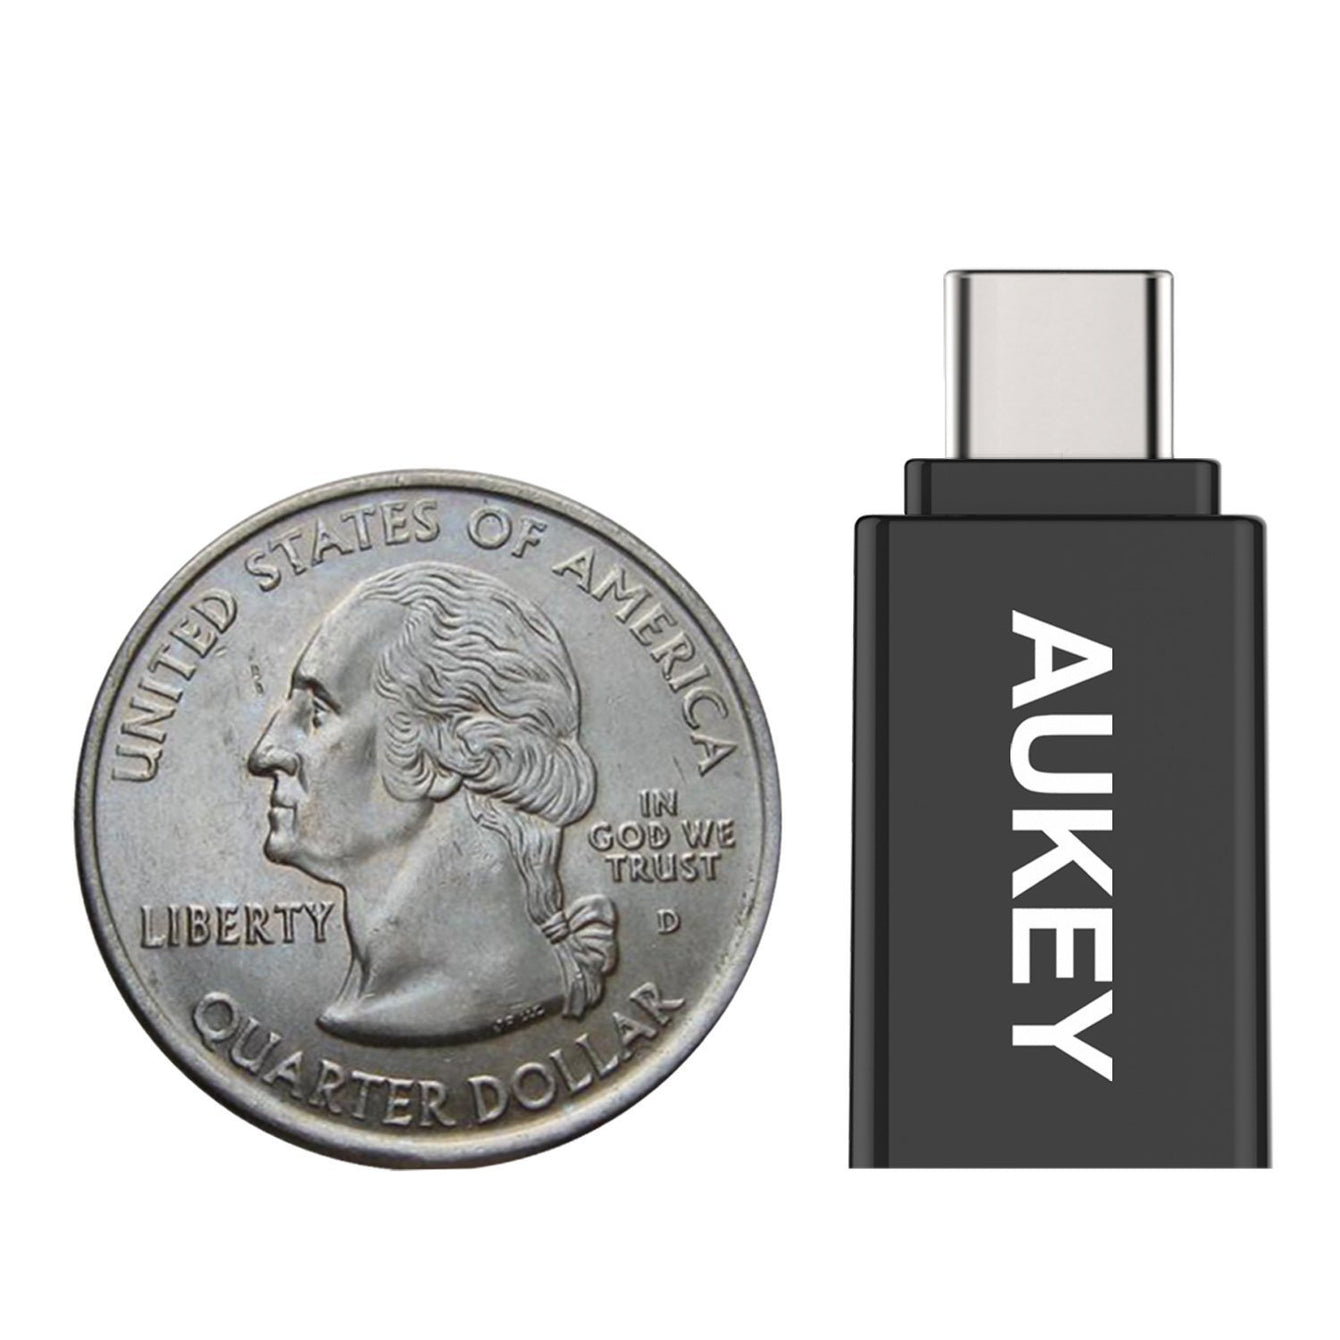 Aukey [CB-A1] USB-C to Micro USB Adapter